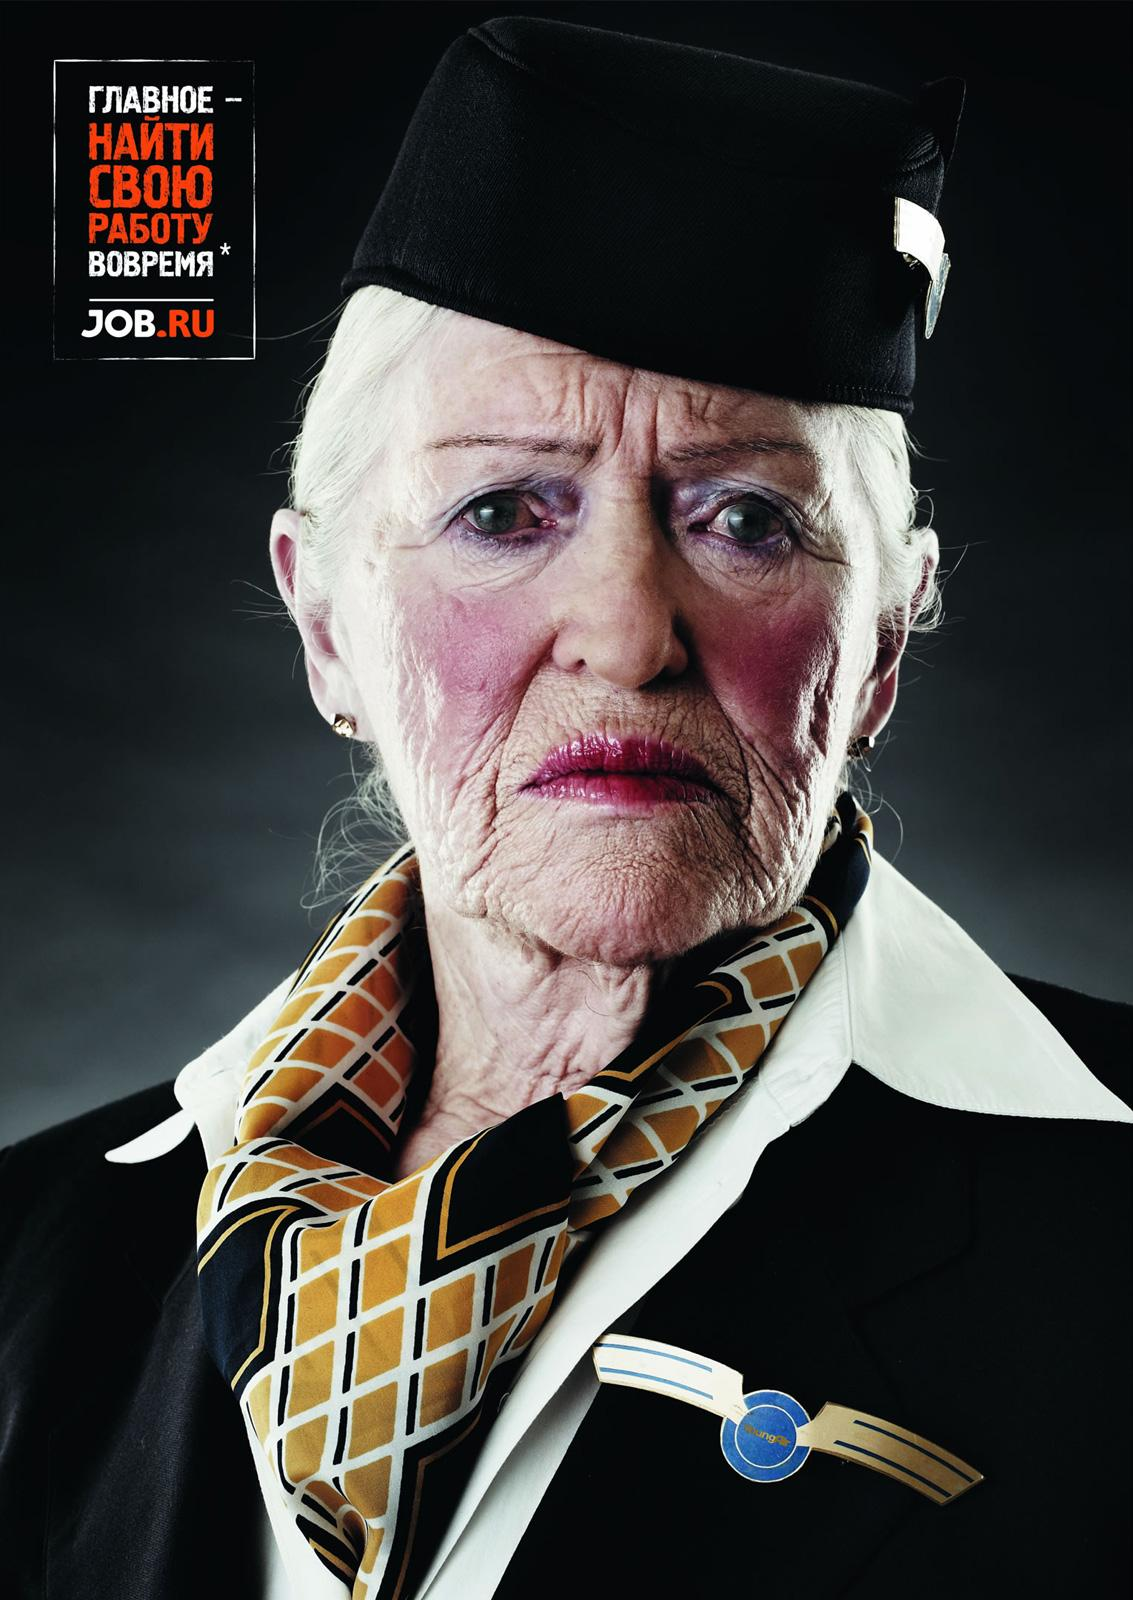 job.ru Print Ad -  Oldies, Flight attendant